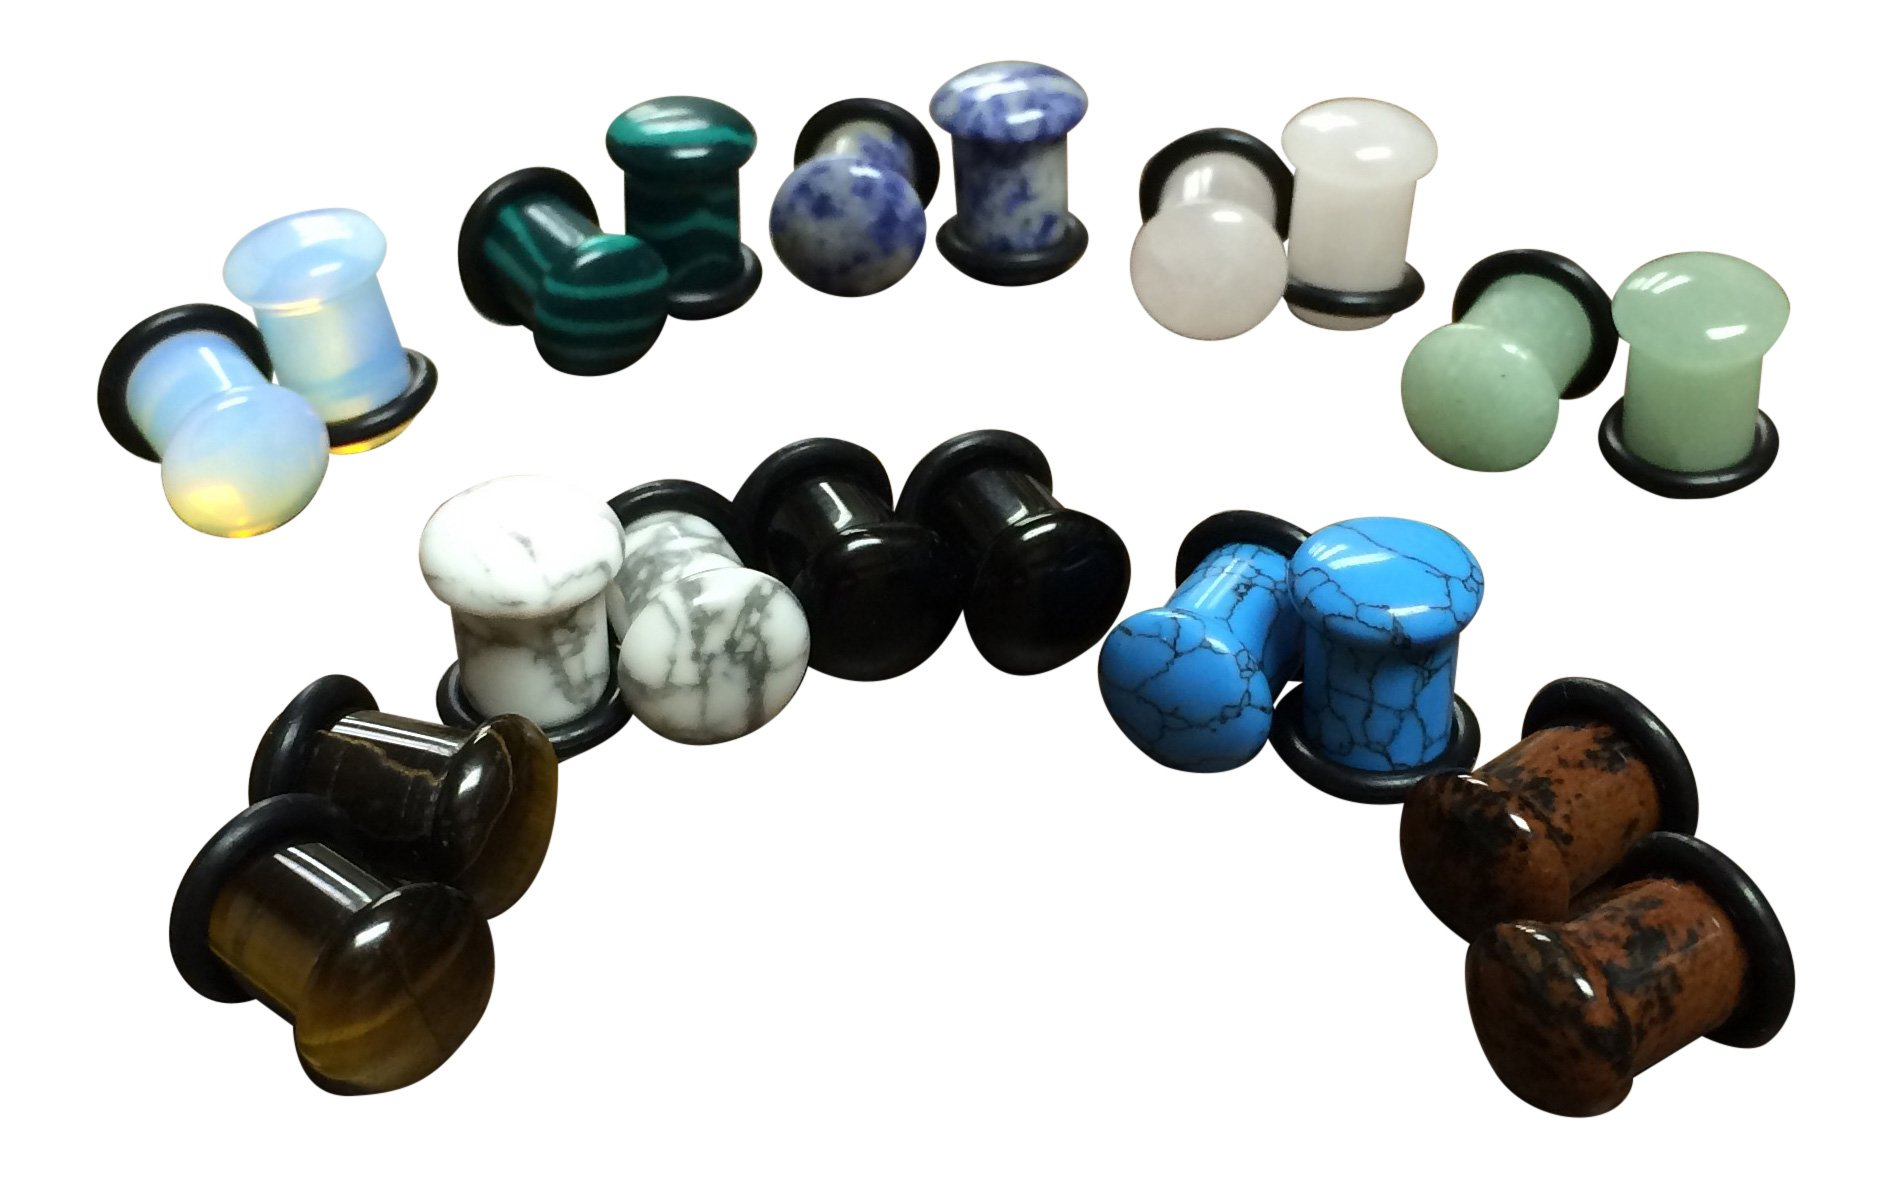 -ALL 10 PAIR- Stone Plugs Organic Single Flare with O-rings Ear Gauges Body Jewelry (lot 1) (2g (6mm) )